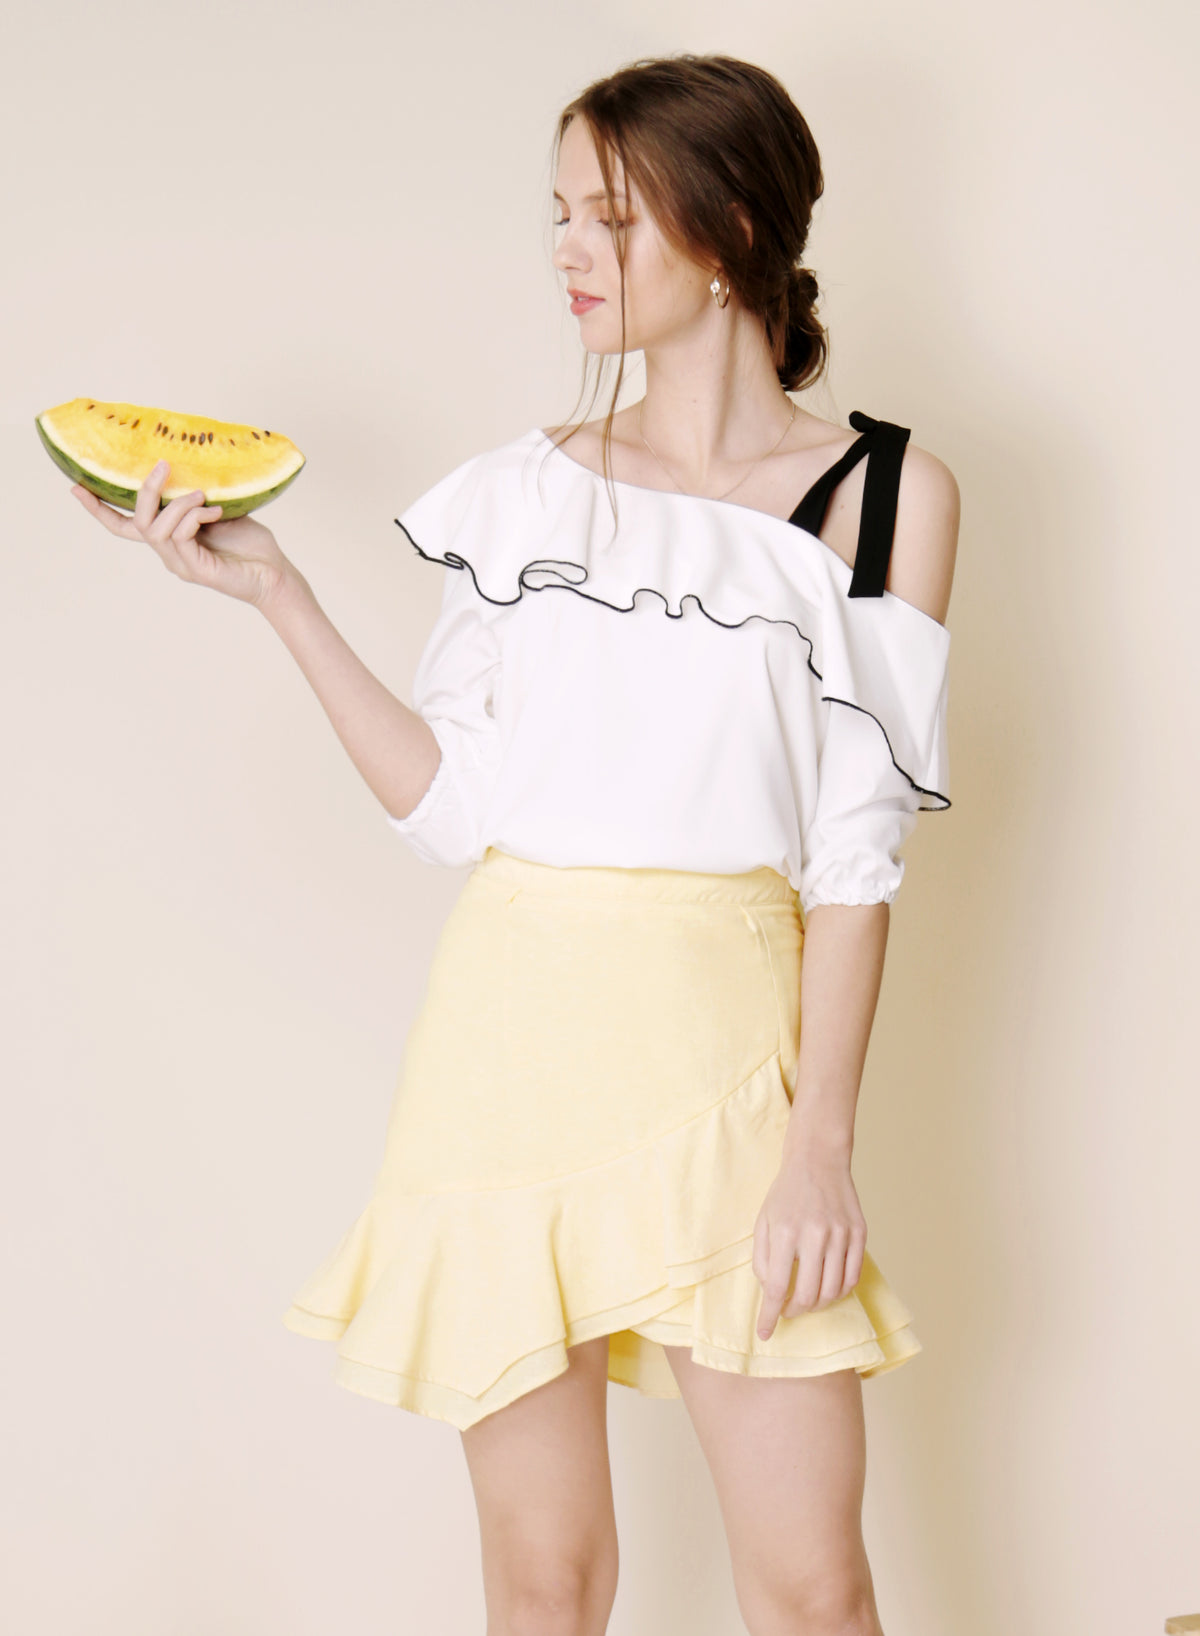 Sunrise Asymmetric Double Tier Skirt (Lemon) at $ 36.50 only sold at And Well Dressed Online Fashion Store Singapore